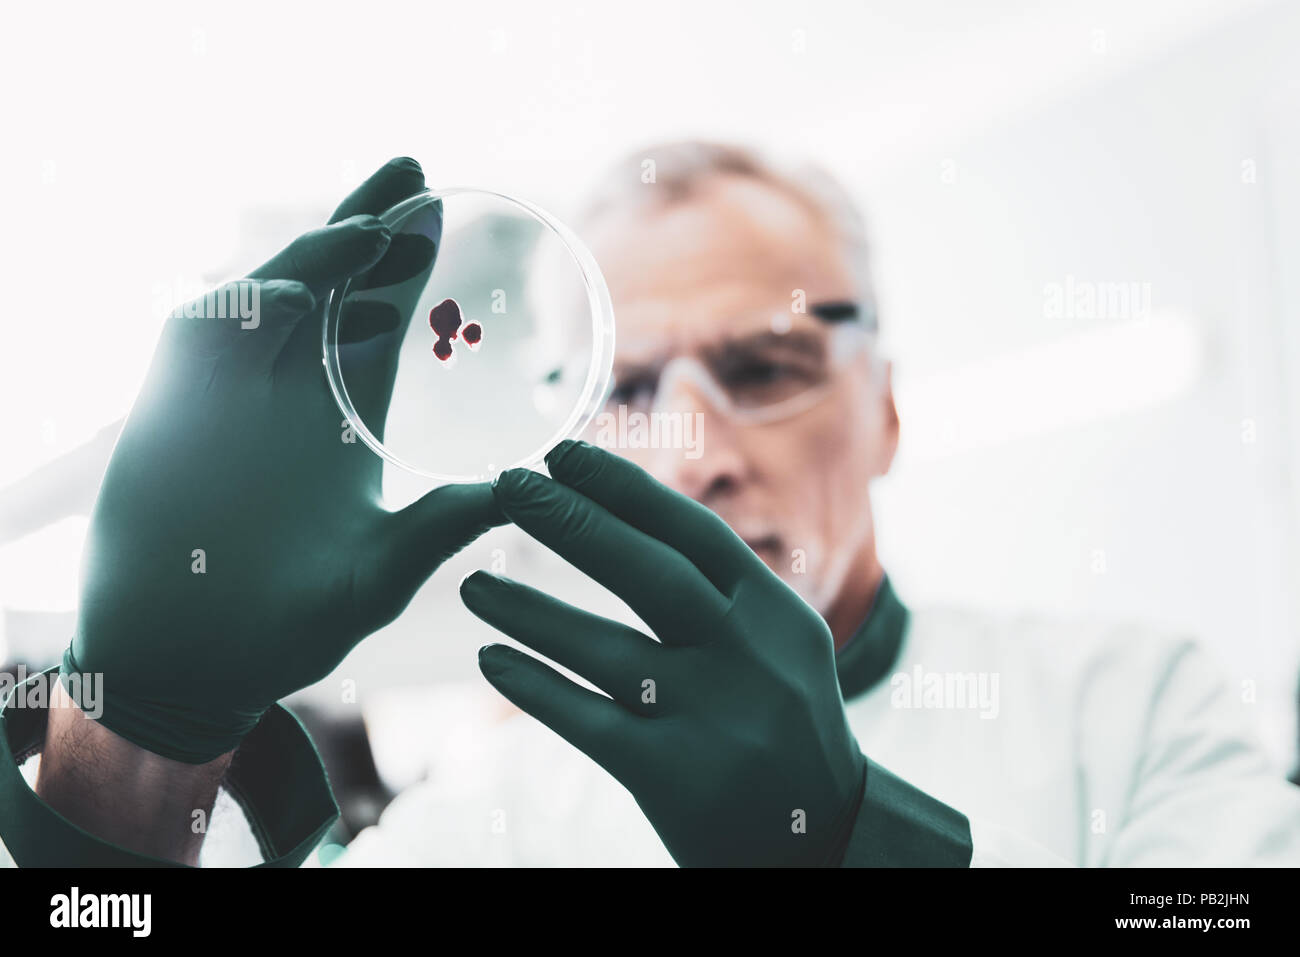 Serious chemist holding test tube in his hands wearing gloves - Stock Image